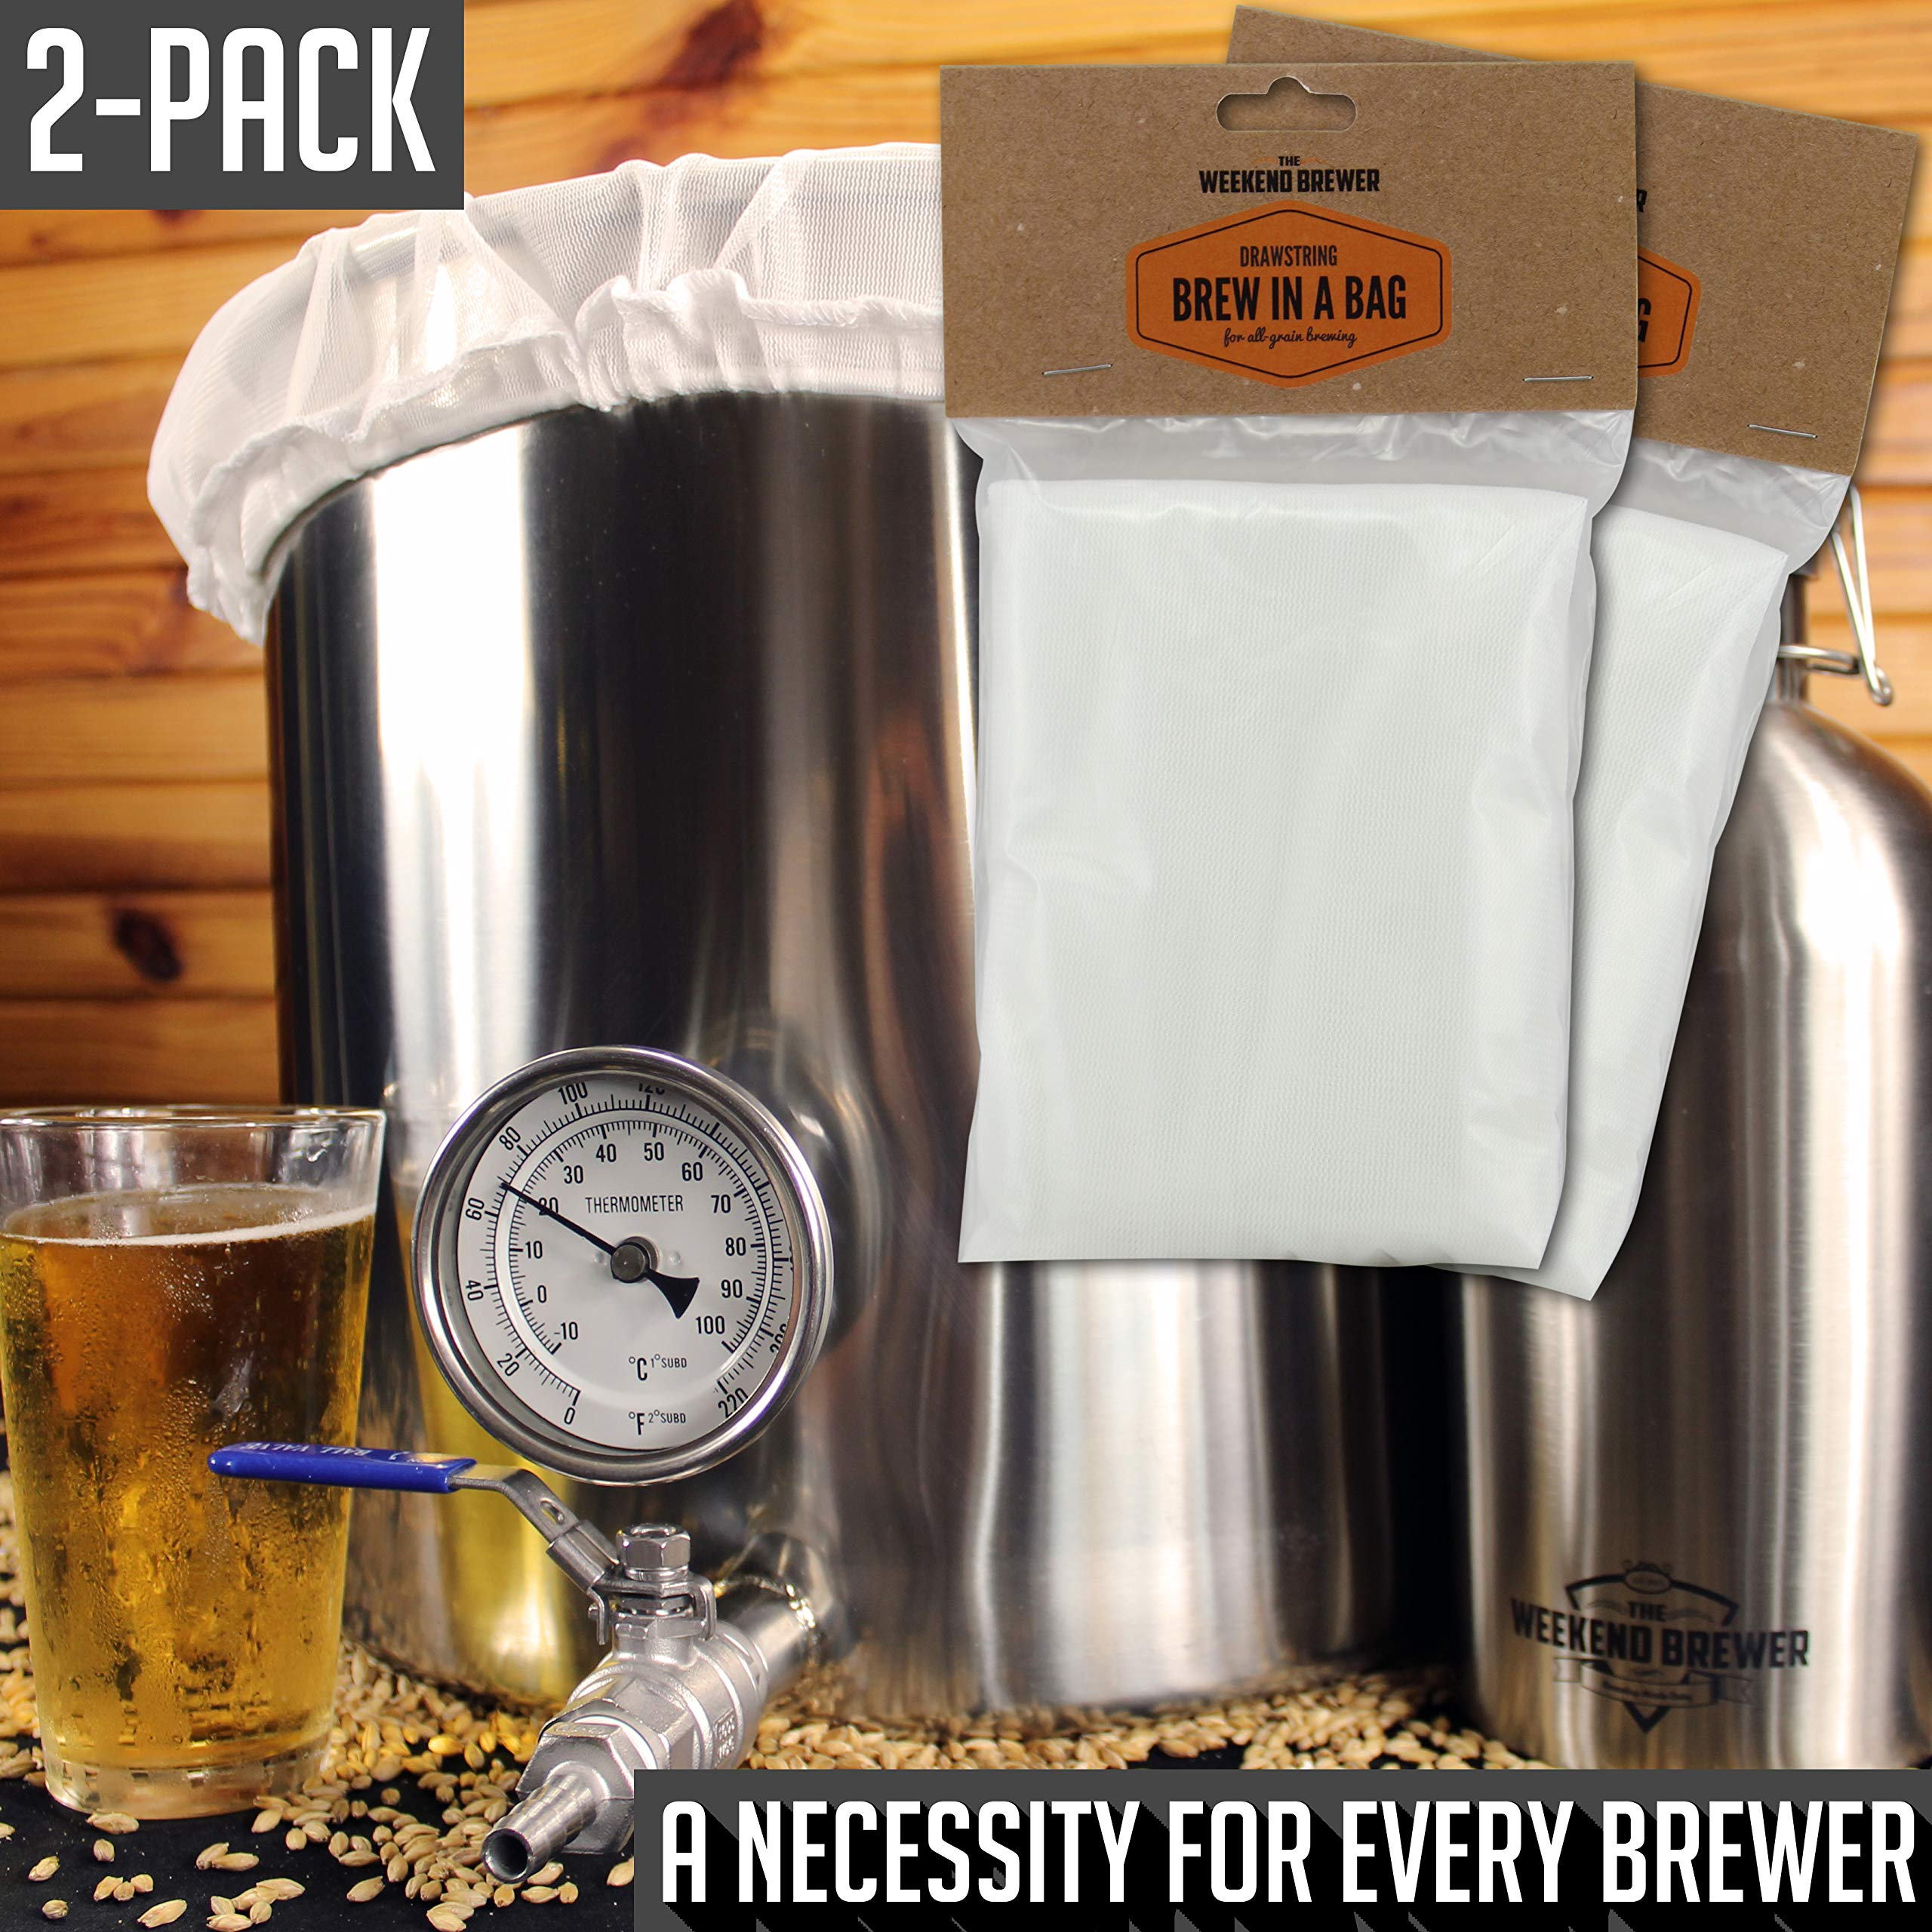 2pk Extra Large (26'' x 22'') Reusable Drawstring Straining Brew in a Bag by The Weekend Brewer (Image #5)